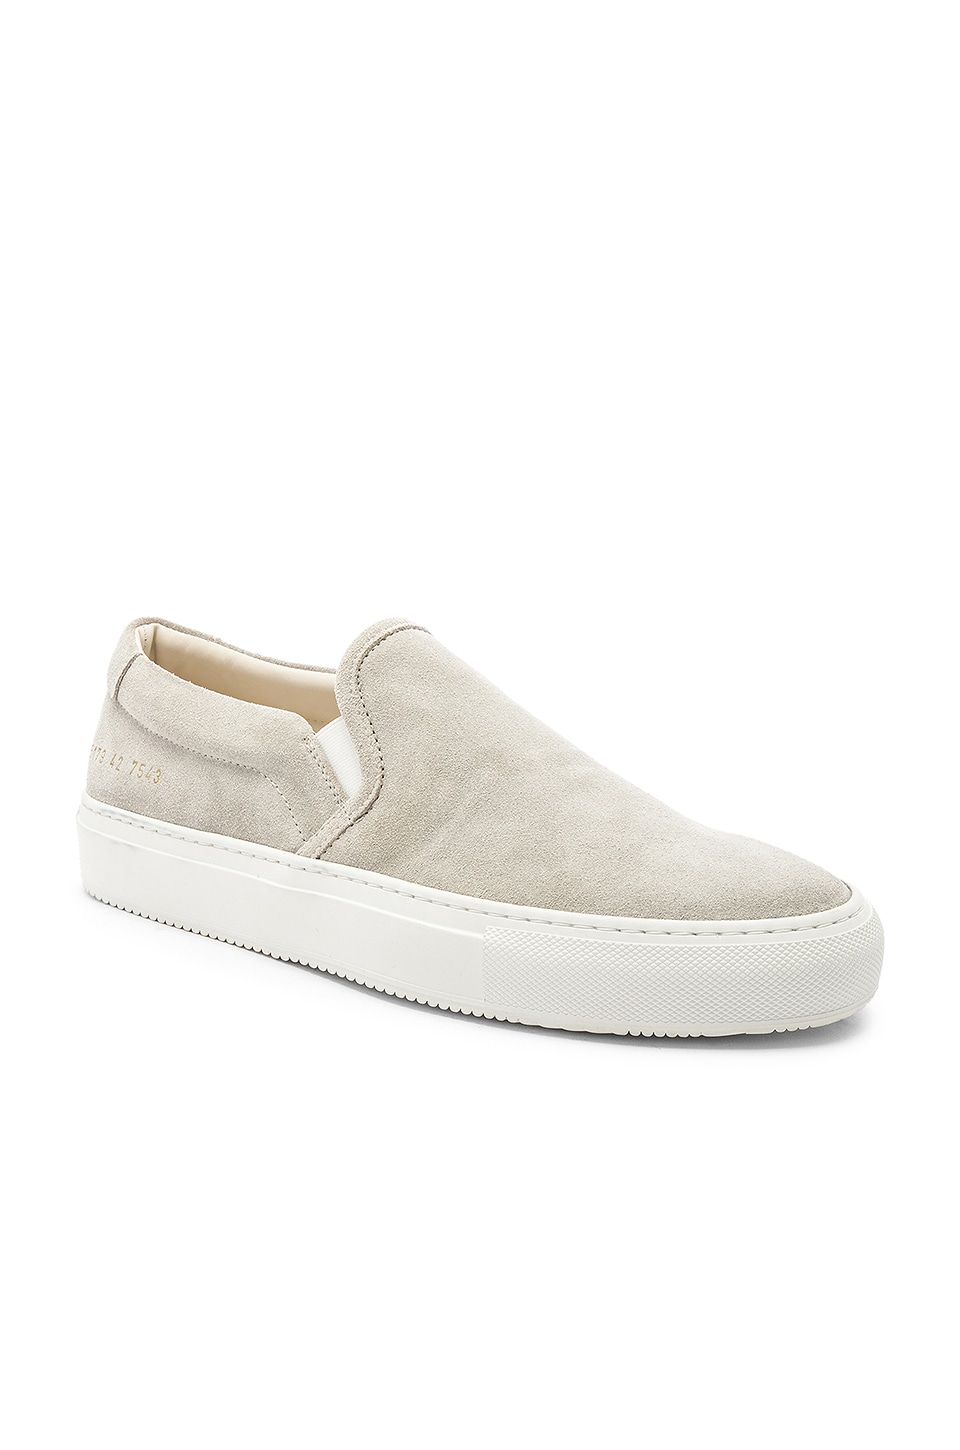 Common Projects Slip On Sneaker in Grey